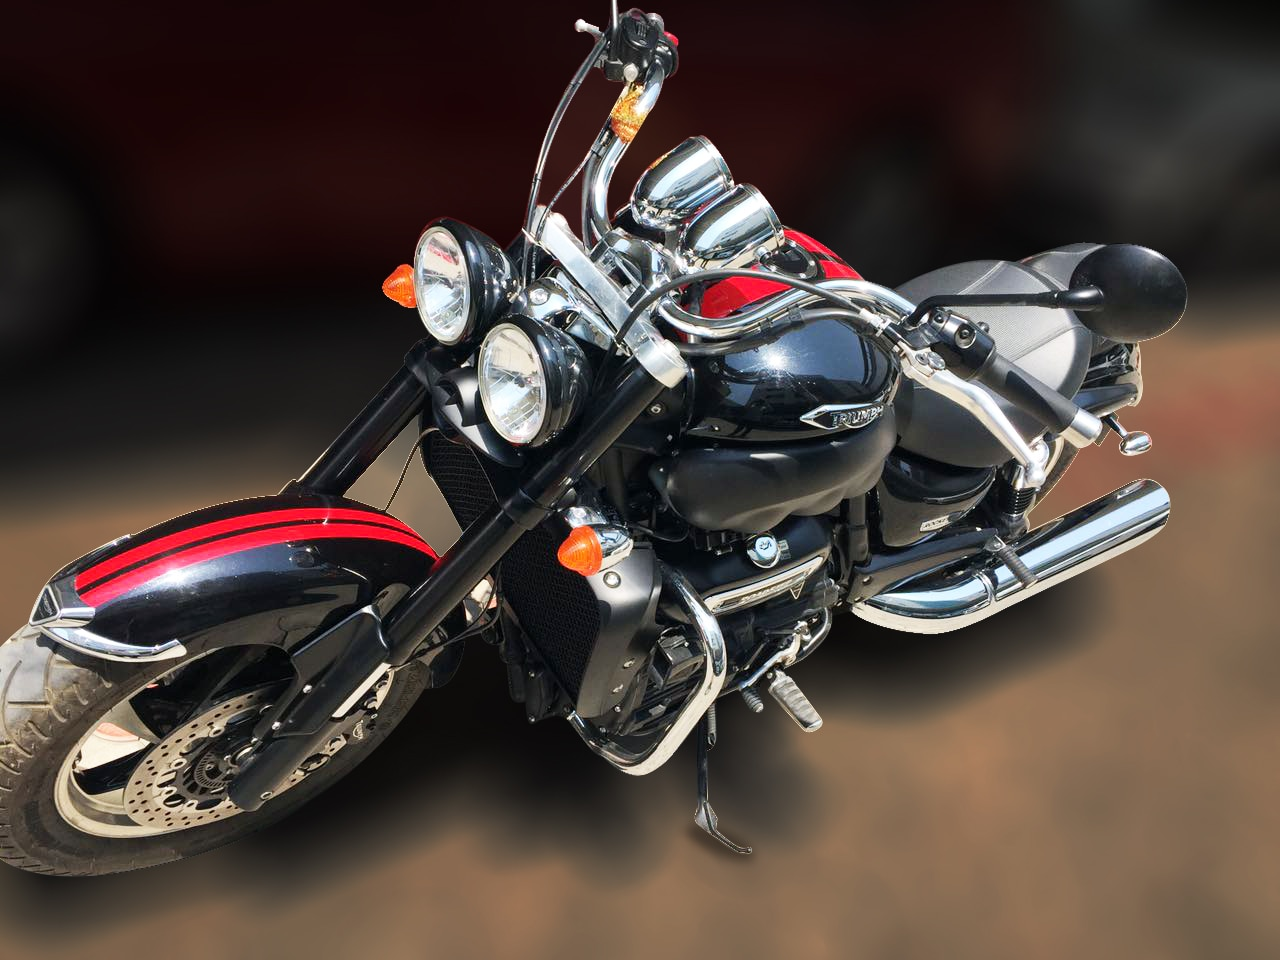 TRIUMPH ROCKET 3 (BLACK COLOR, PETROL), 2017 model done only         1, 000kms in absolute mint condition... For further info call 7569696666.